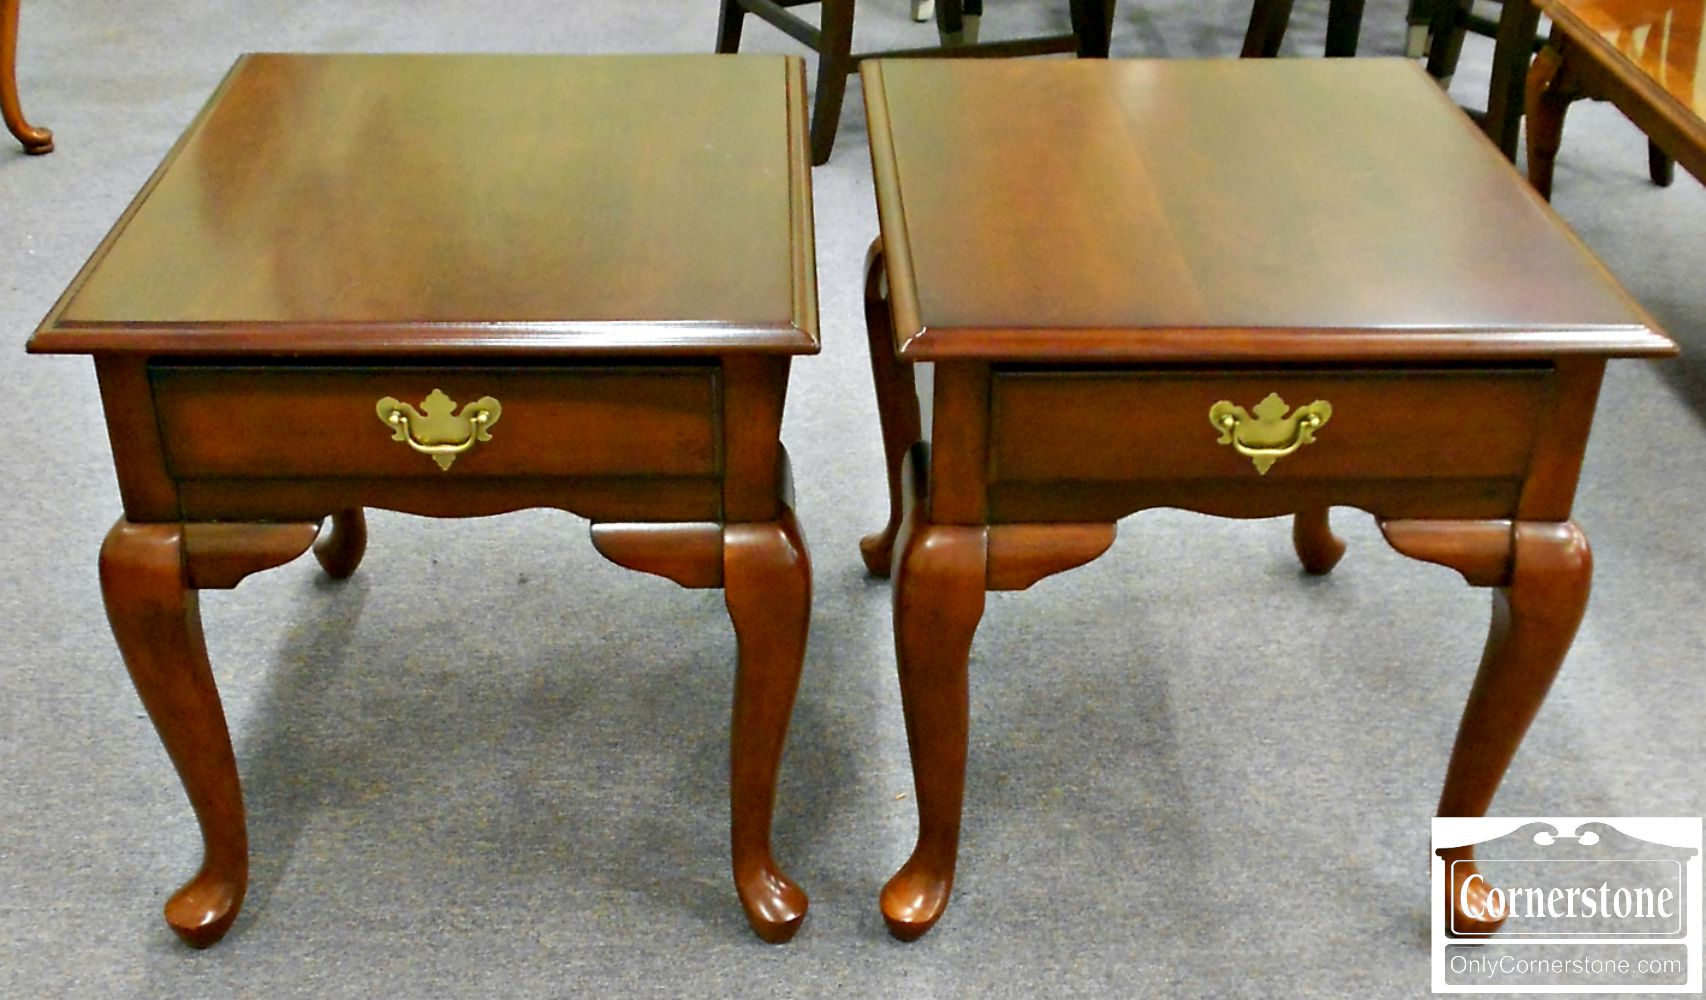 5208-771 Pair of Queen Anne End Tables